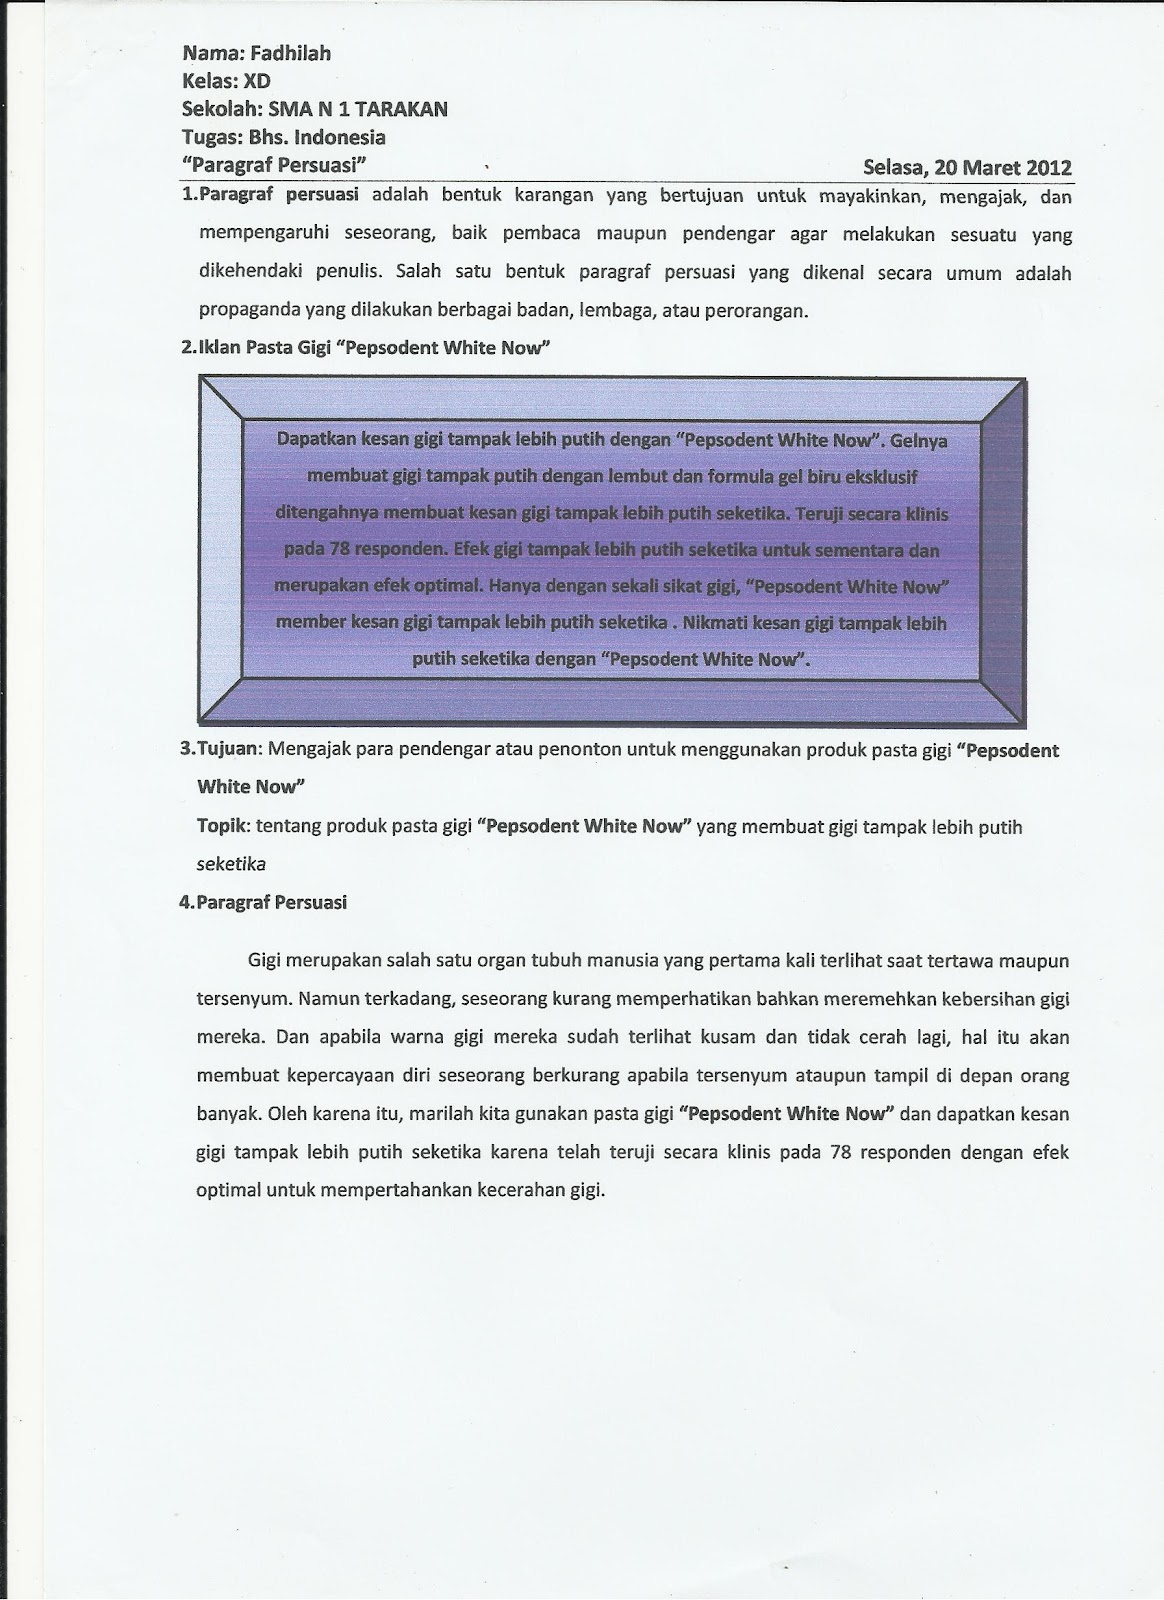 contoh essay 5 paragraf Contoh essay bahasa inggris 5 paragraf formal education system in indonesia is prone to various discourses and policies apa contoh essay bahasa inggris dapat.